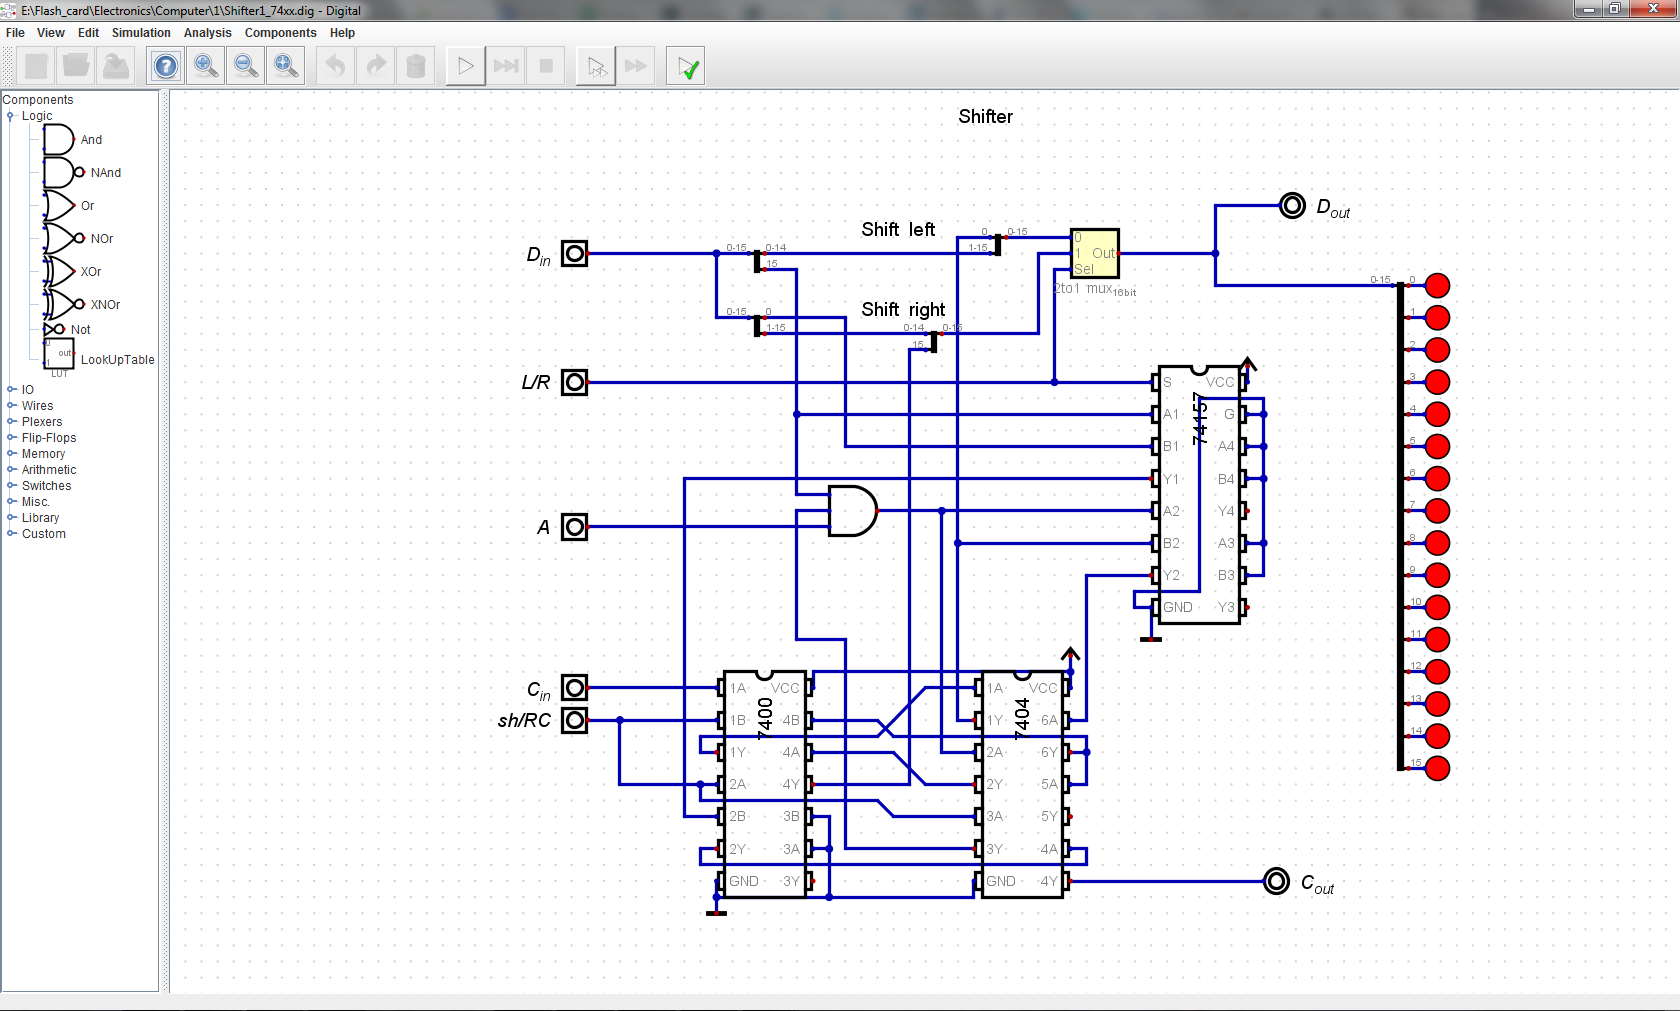 16 Bit Ttl Computer Inverter Circuit Schematic And Sh Rc For Choosing Between Shift Rotate Through Carry The Shifter Mostly Consists Of 2 To 1 Muxes With Handful Logic Gates